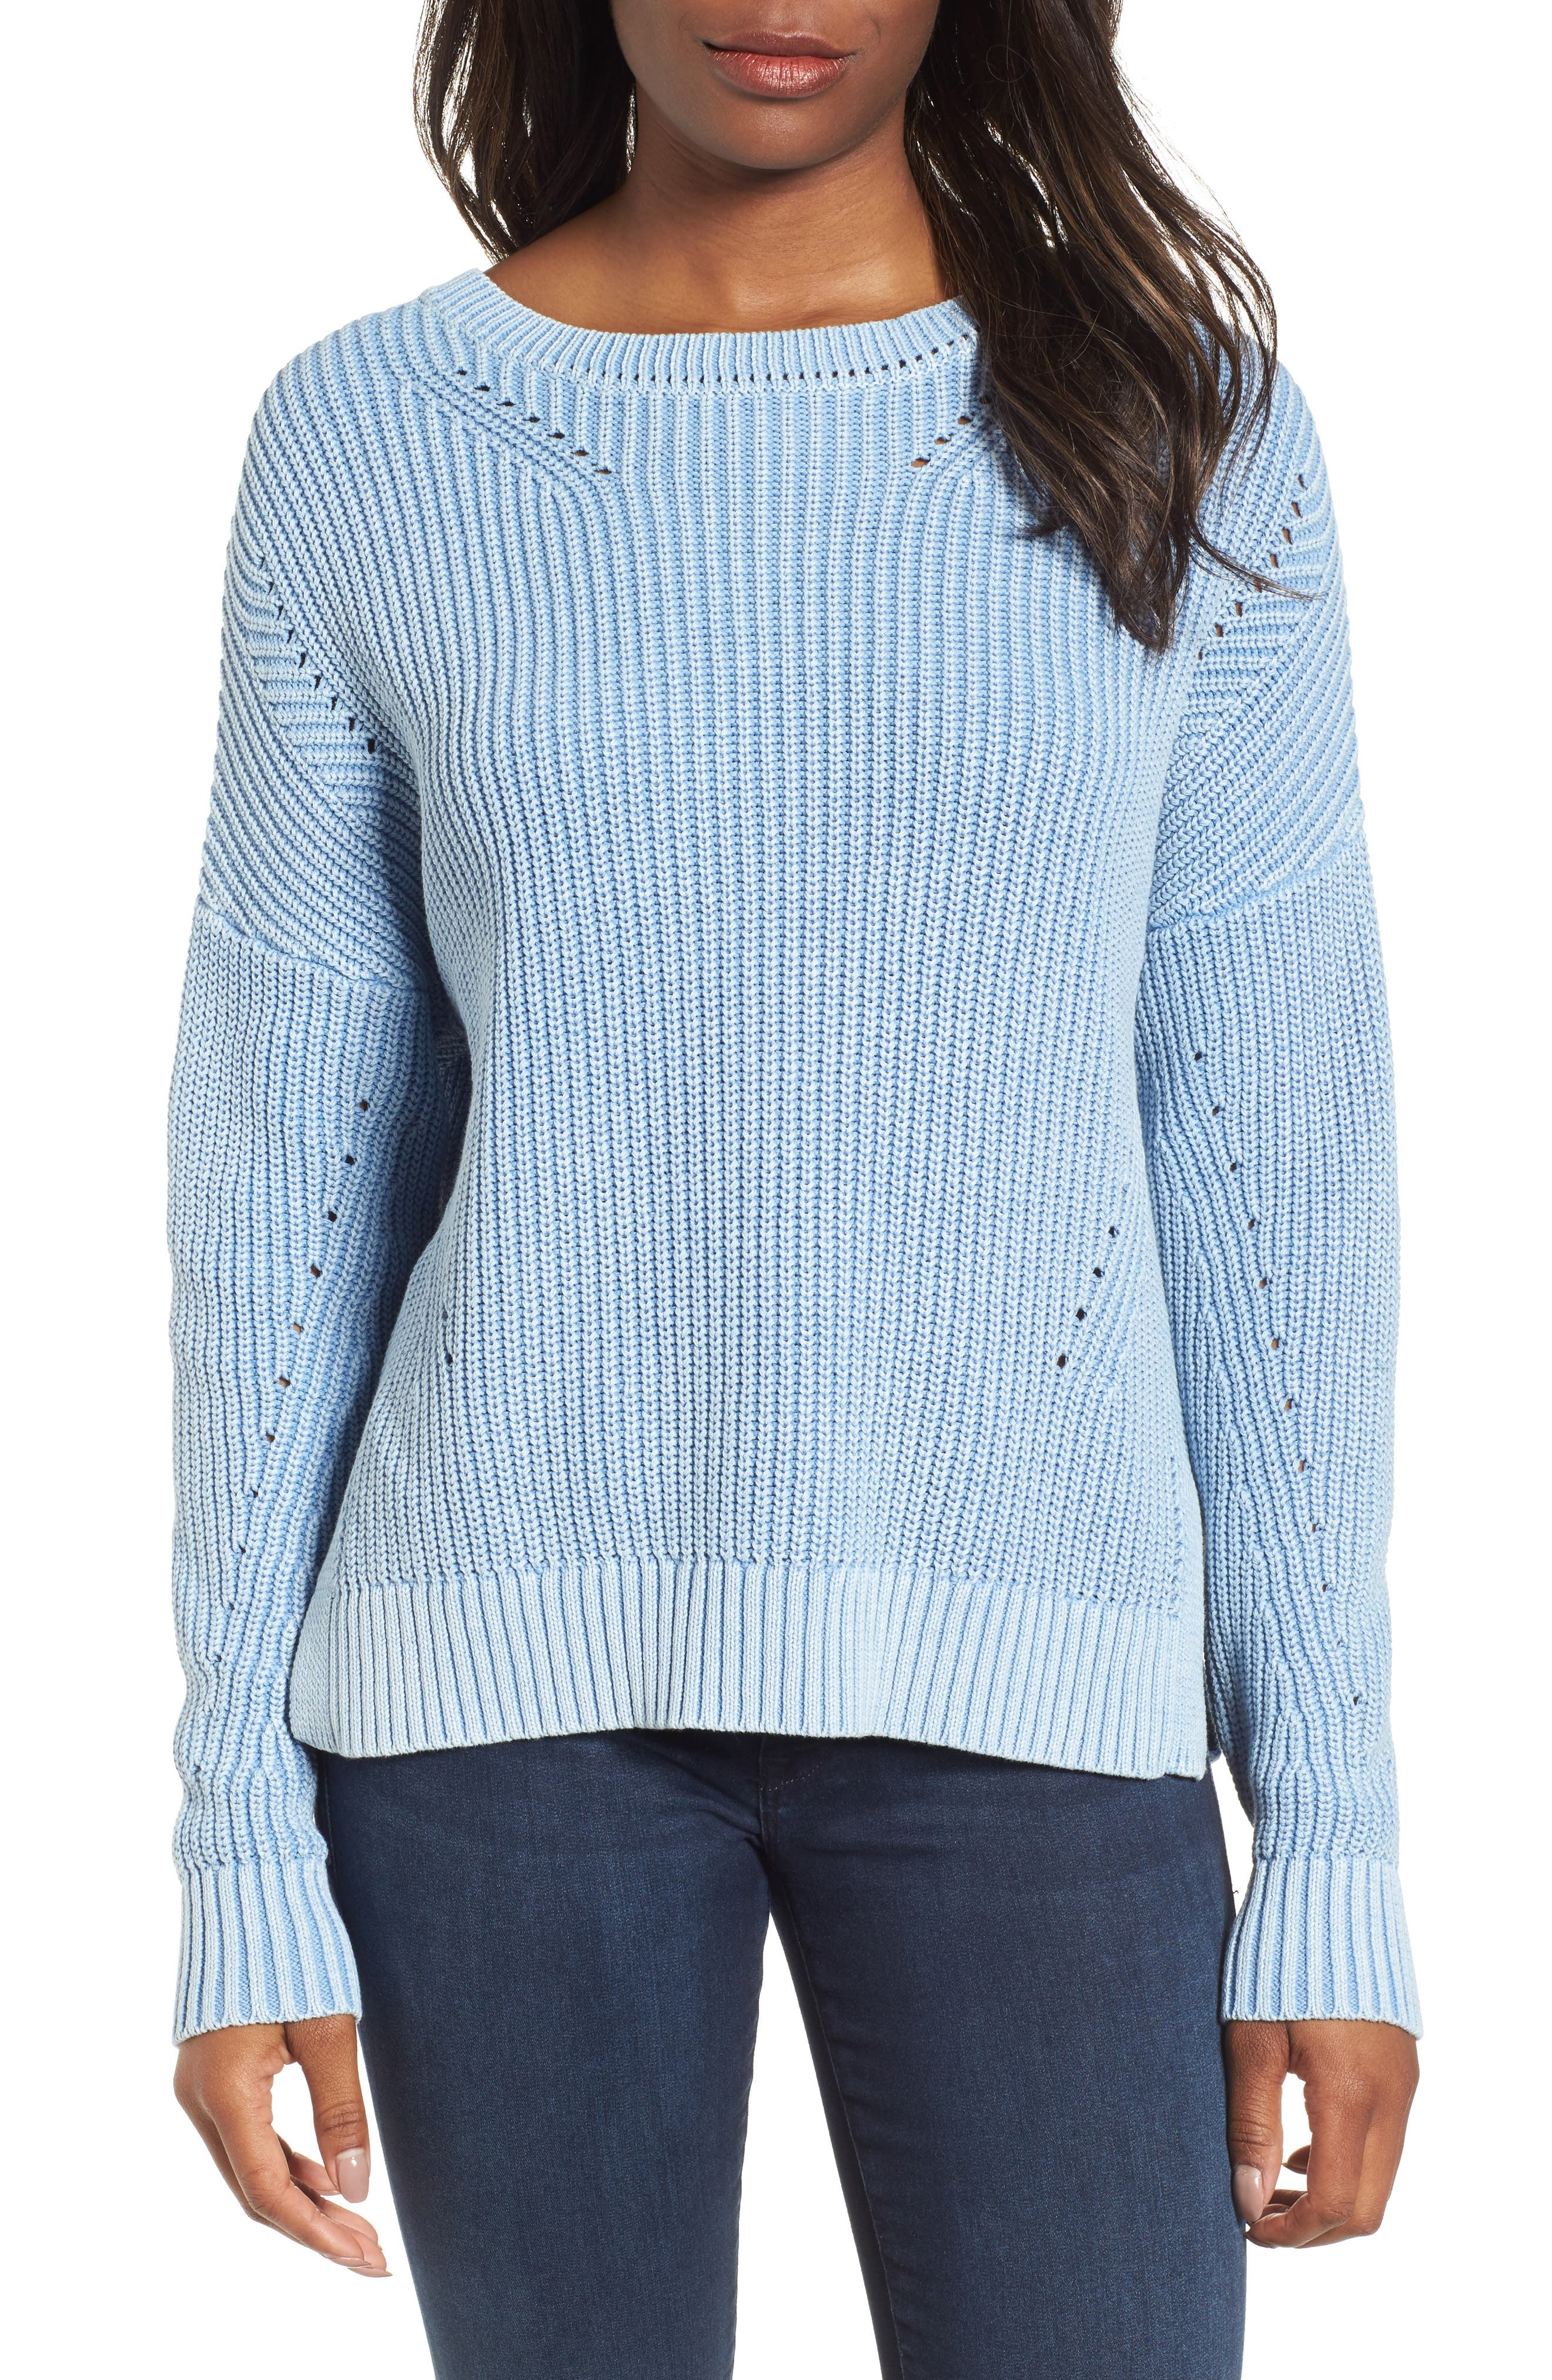 Shaker Stitch Cotton Sweater,                         Main,                         color,